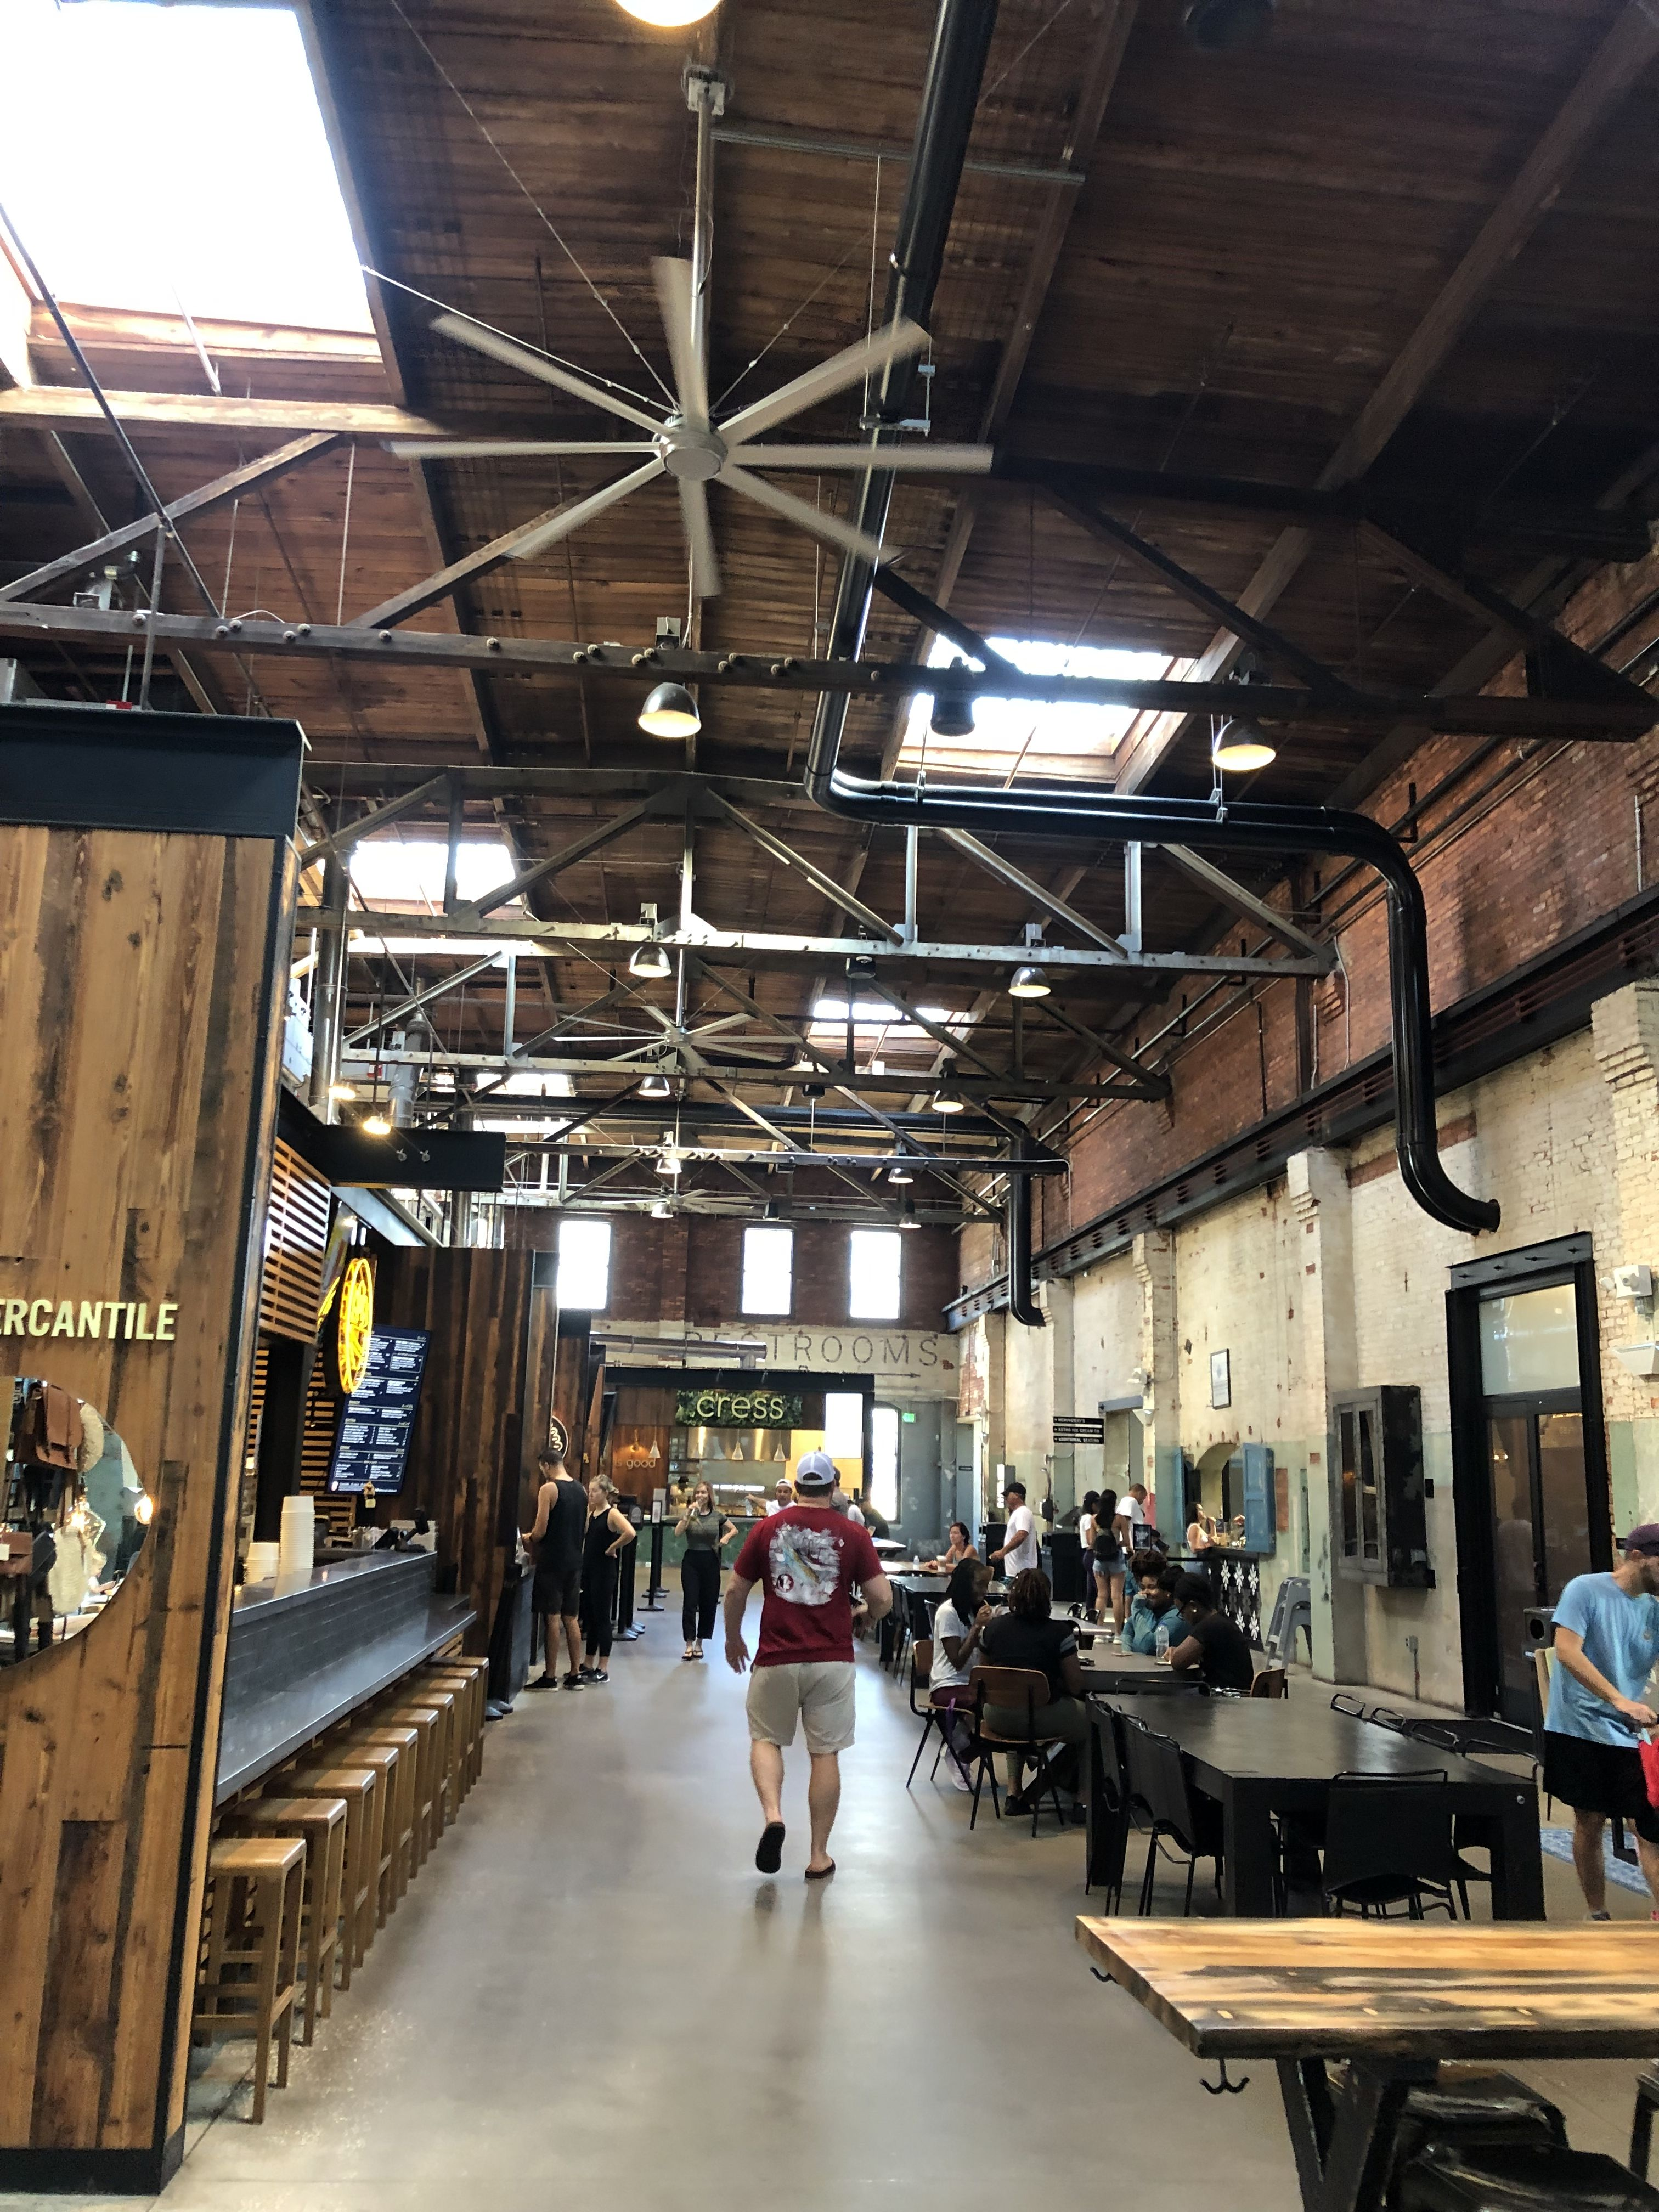 Pin by kelsey magness on artisan public market views